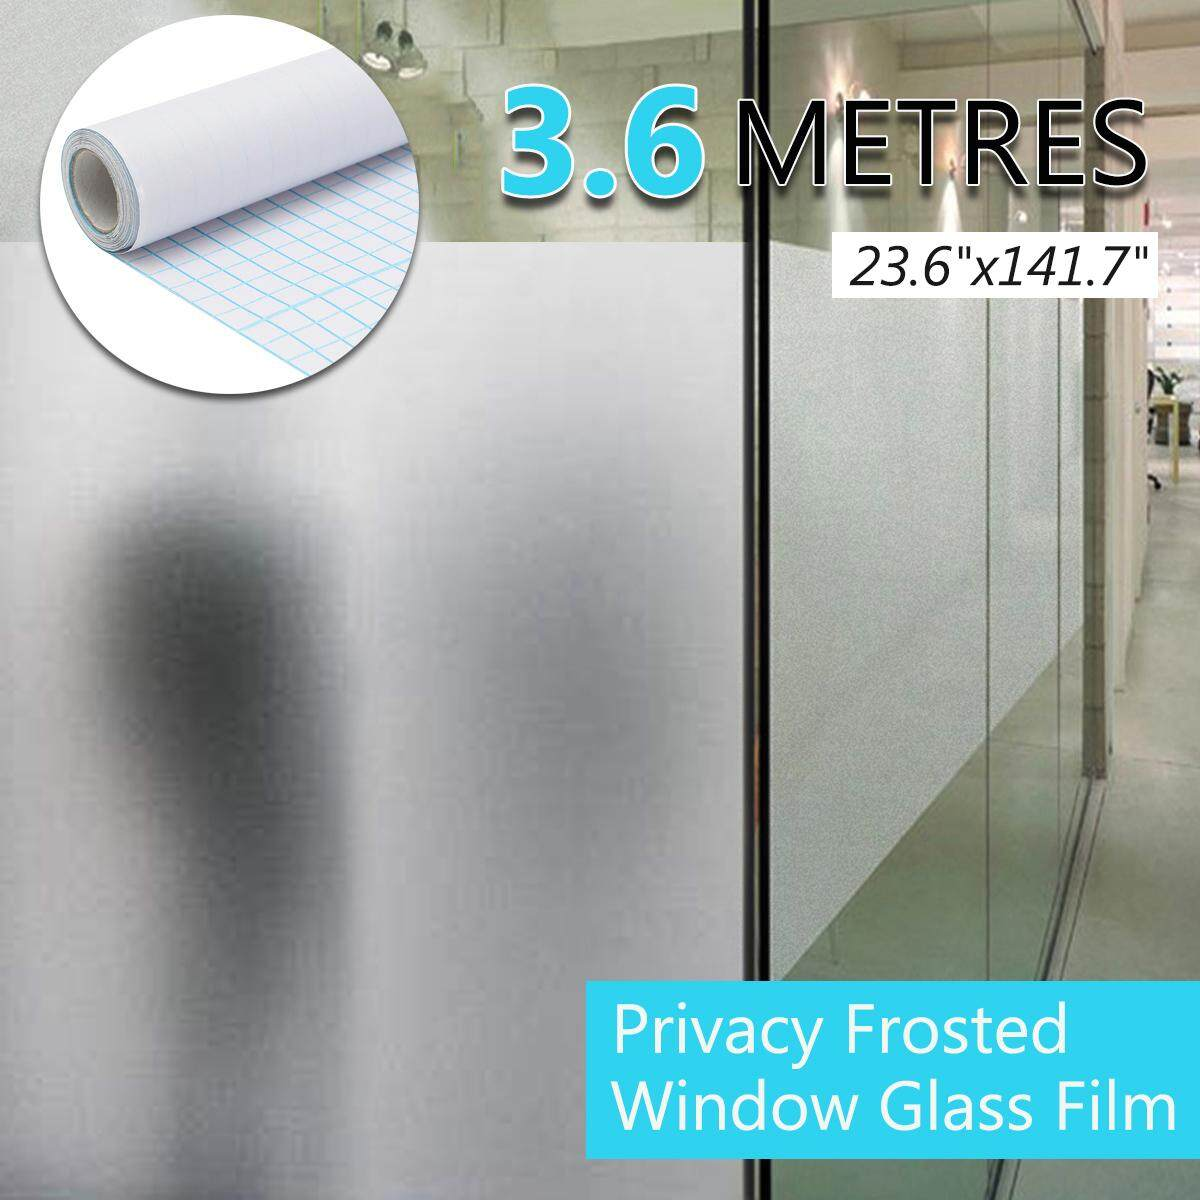 Free Shipping Super Deal Limited Offer 24 X12ft Frosted Home Privacy Bedroom Bathroom Diy Window Tint Glass Film Sheet